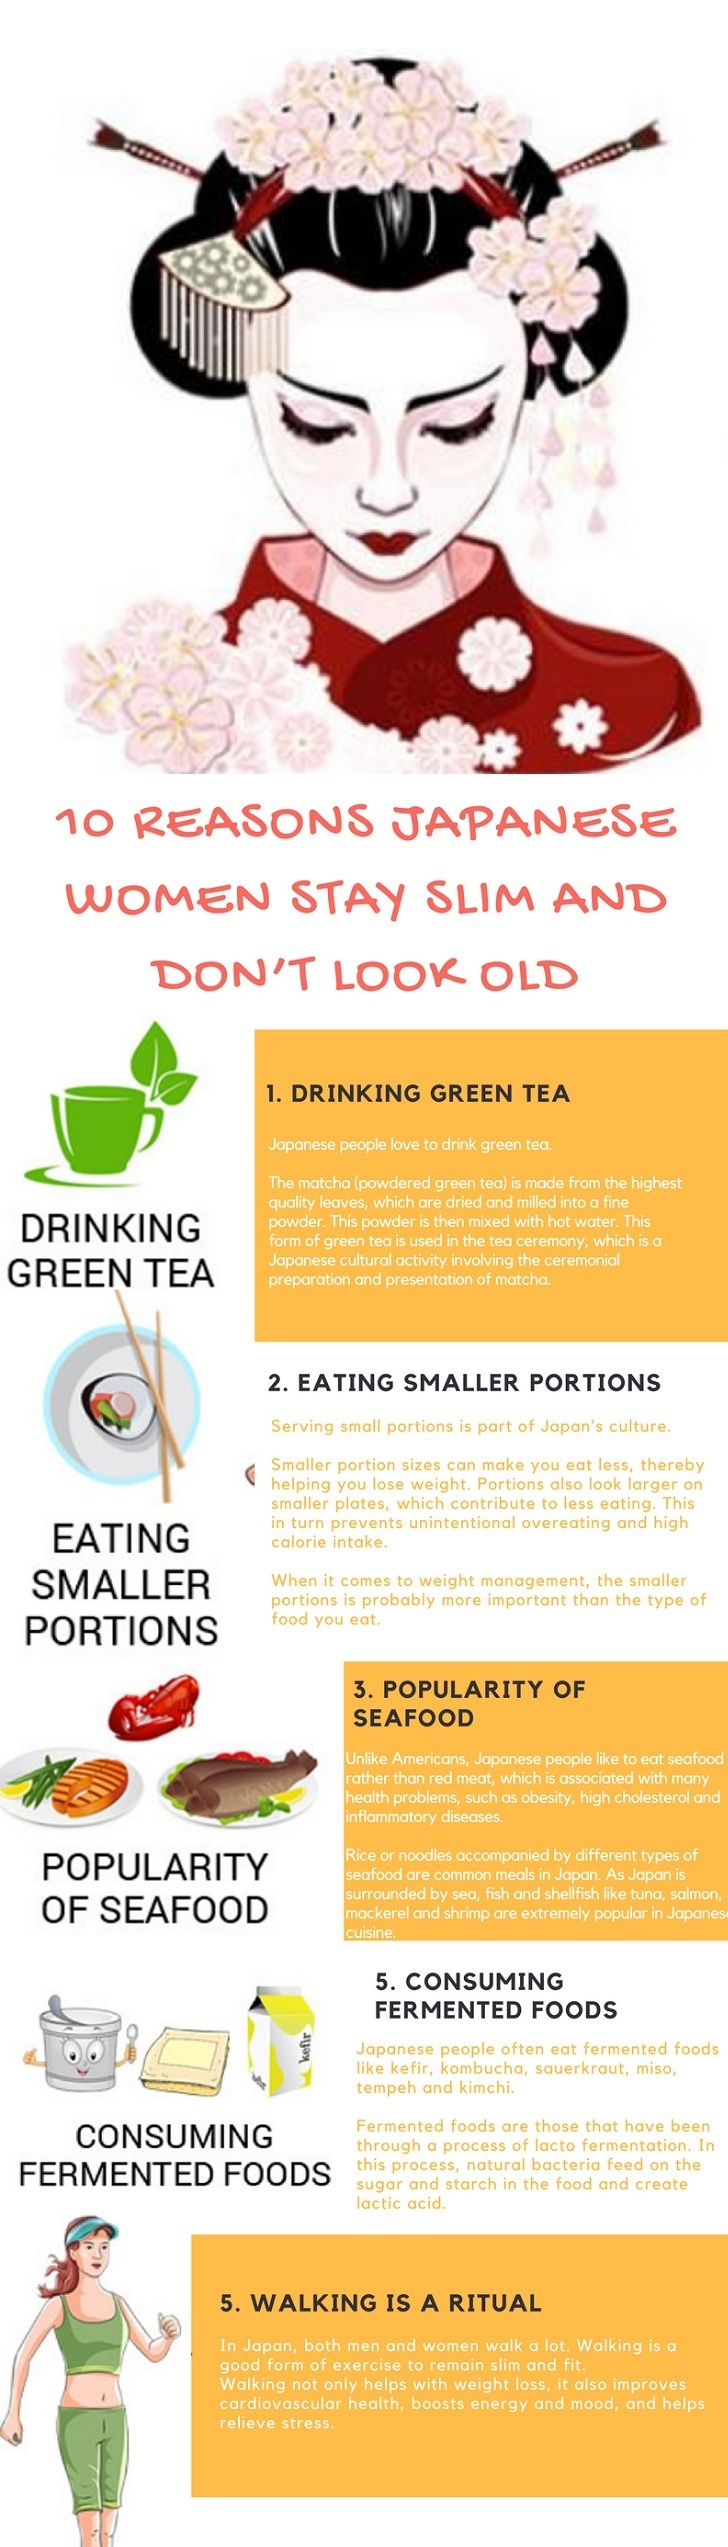 Here are the top 10 reasons why Japanese women stay slim and don't look old. 1. Drinking Green Tea Japanese people love to drink green tea. The matcha (powdered green tea) is made from the highest quality leaves, which are dried and milled into a fine powder. This powder is then mixed with hot water. …